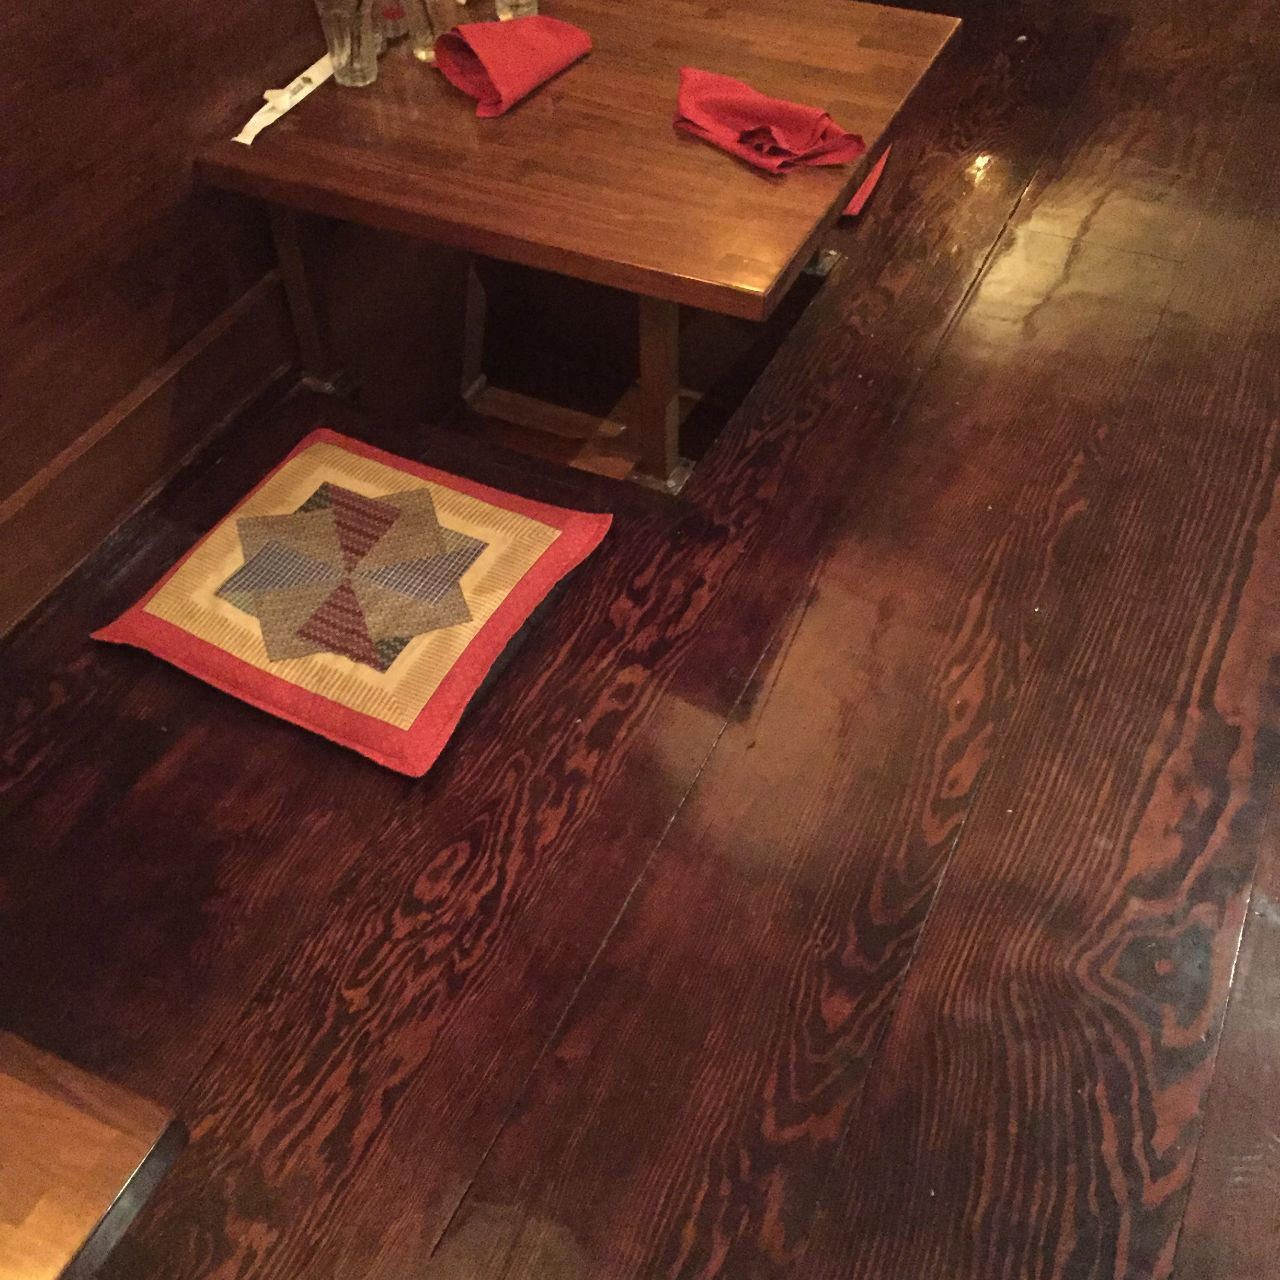 empire today hardwood flooring reviews of irori sushi restaurant marina del rey ca opentable with 25040265